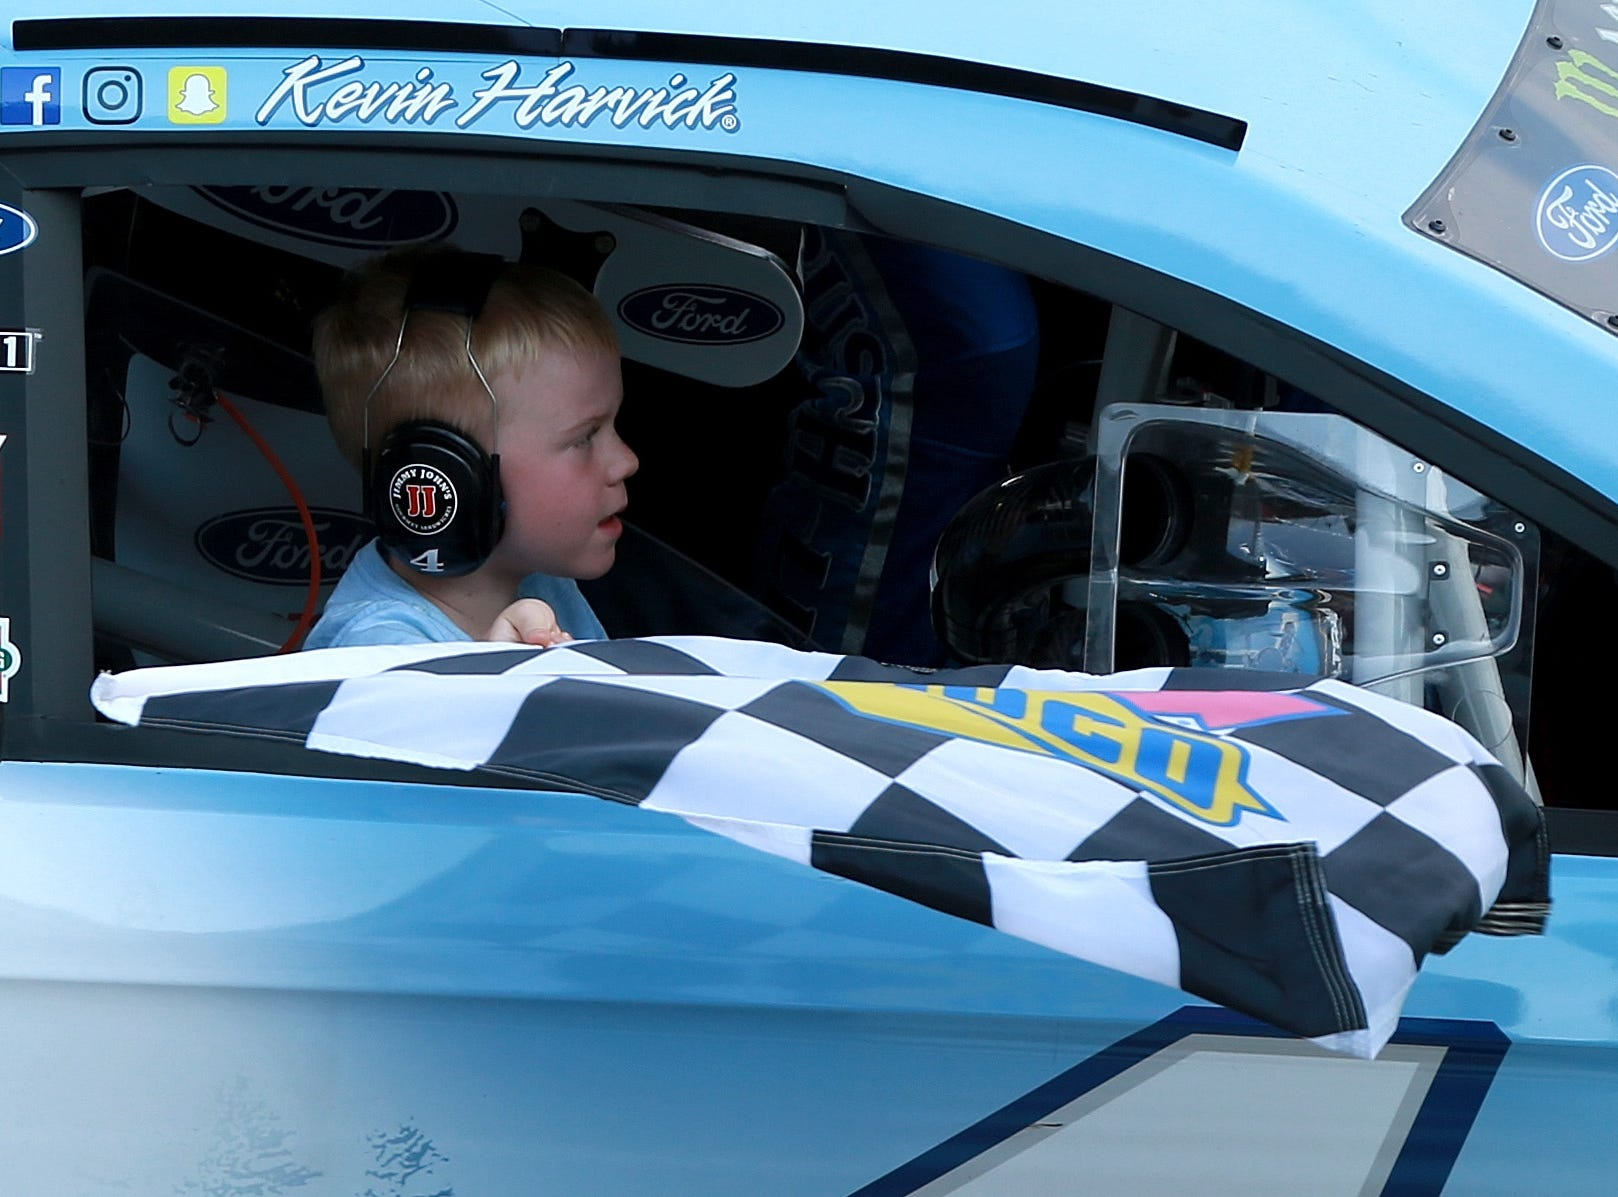 Keelan Harvick, son of Kevin Harvick, driver of the #4 Busch Light/Mobil 1 Ford, celebrates with the checkered flag after his dad won the Monster Energy NASCAR Cup Series Consmers Energy 400 at Michigan International Speedway.